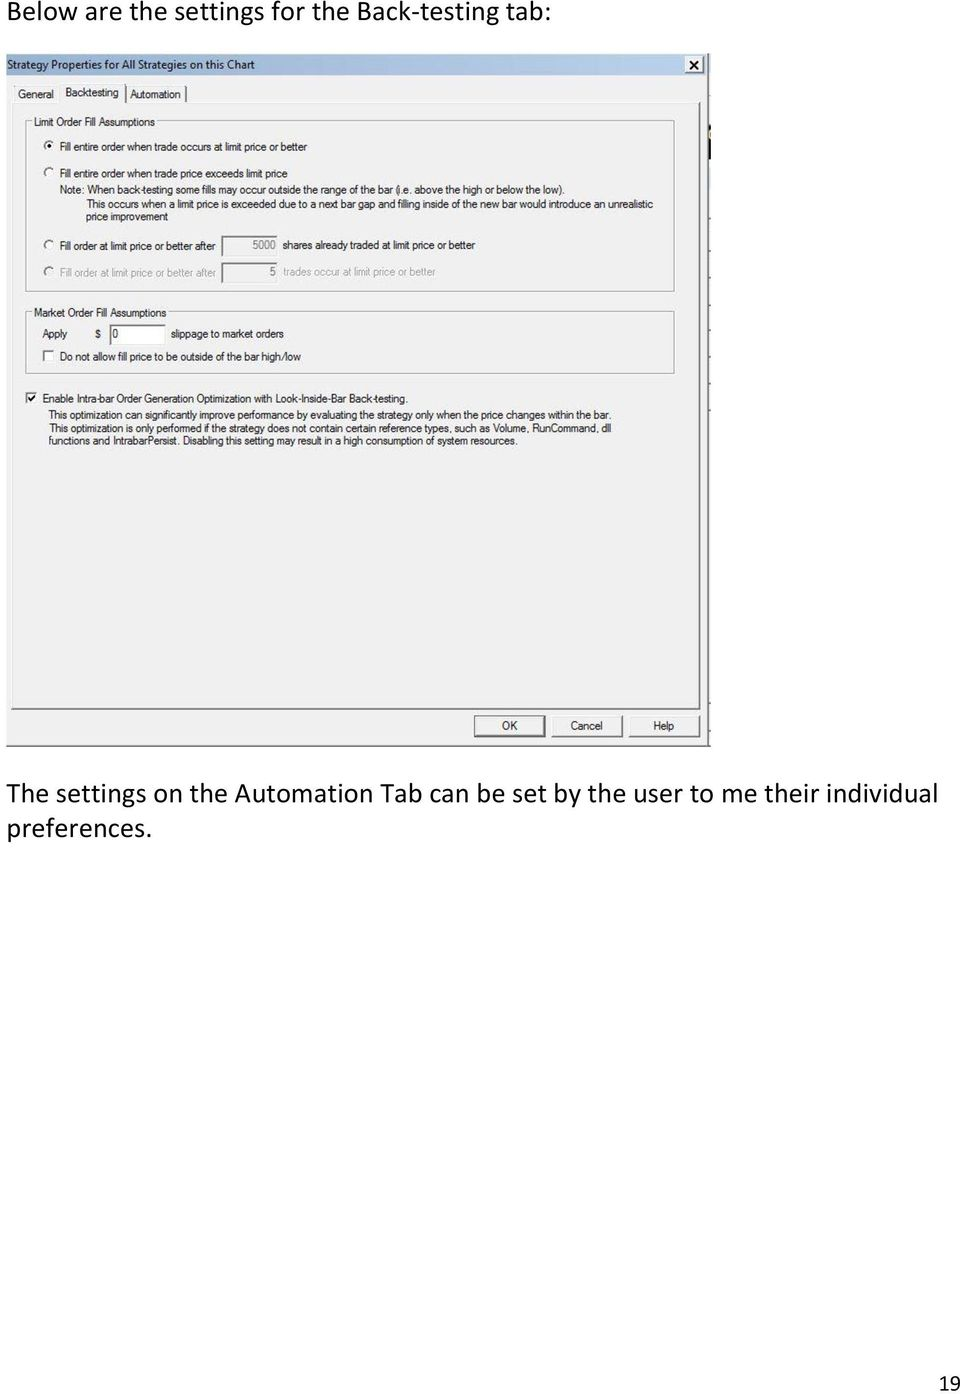 the Automation Tab can be set by the